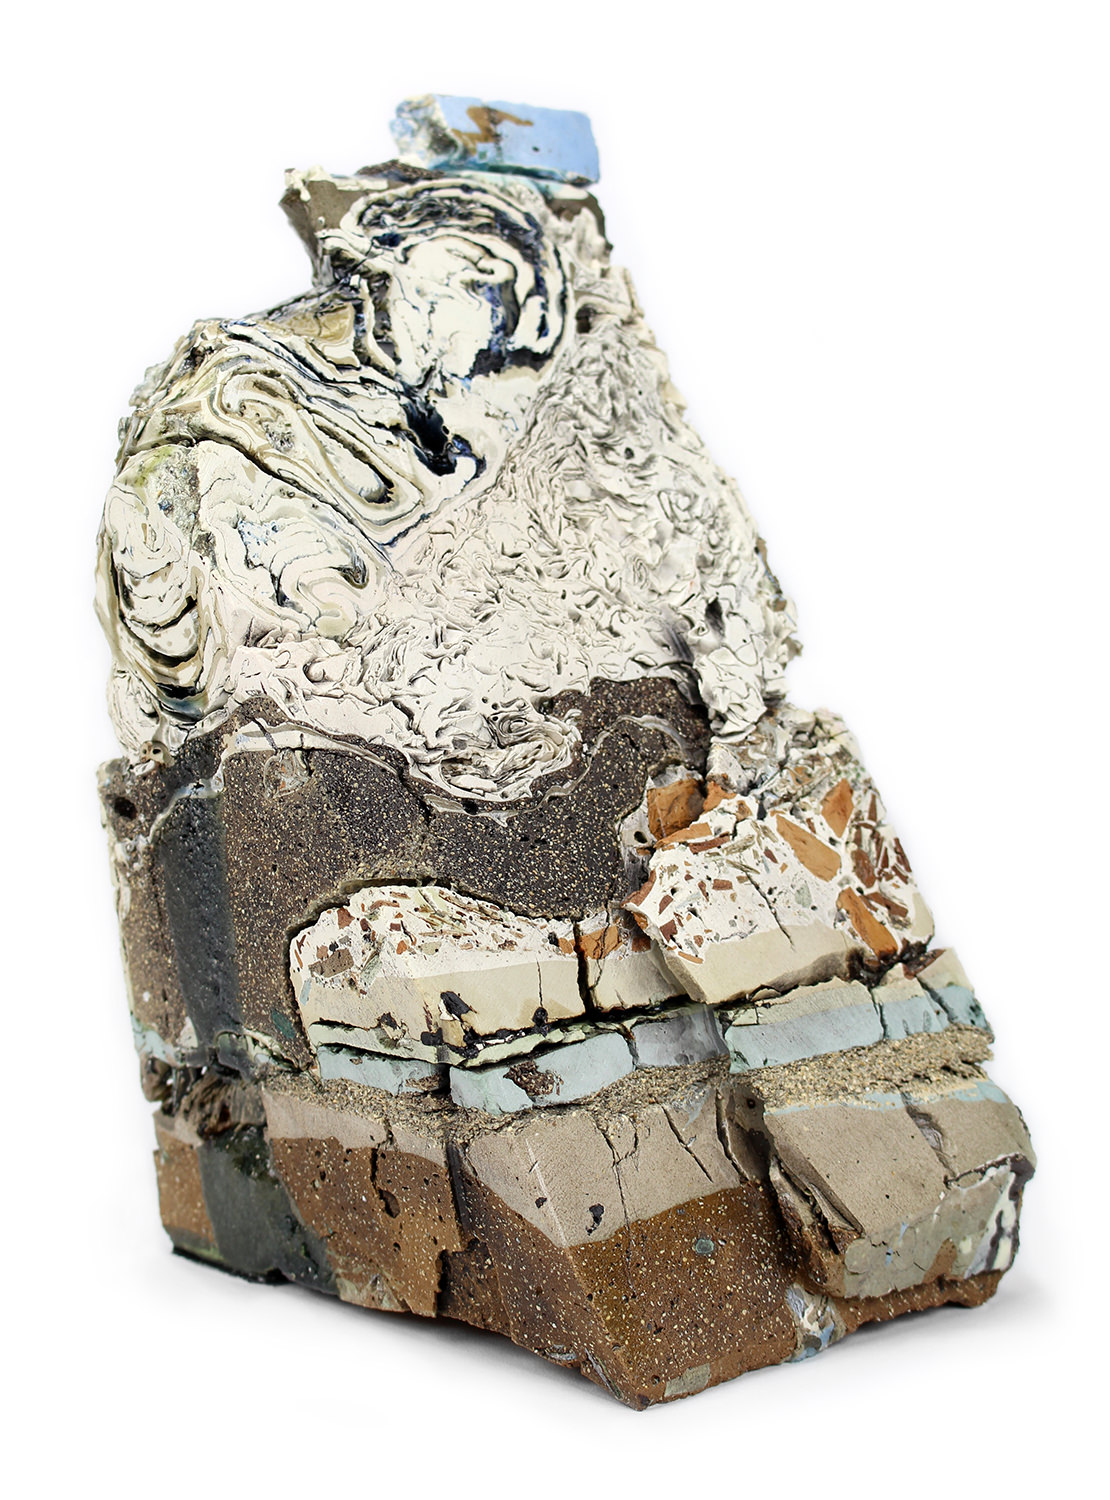 Landfill No.38: Northeastern Cross Section  by Jonathan Mess, 2015